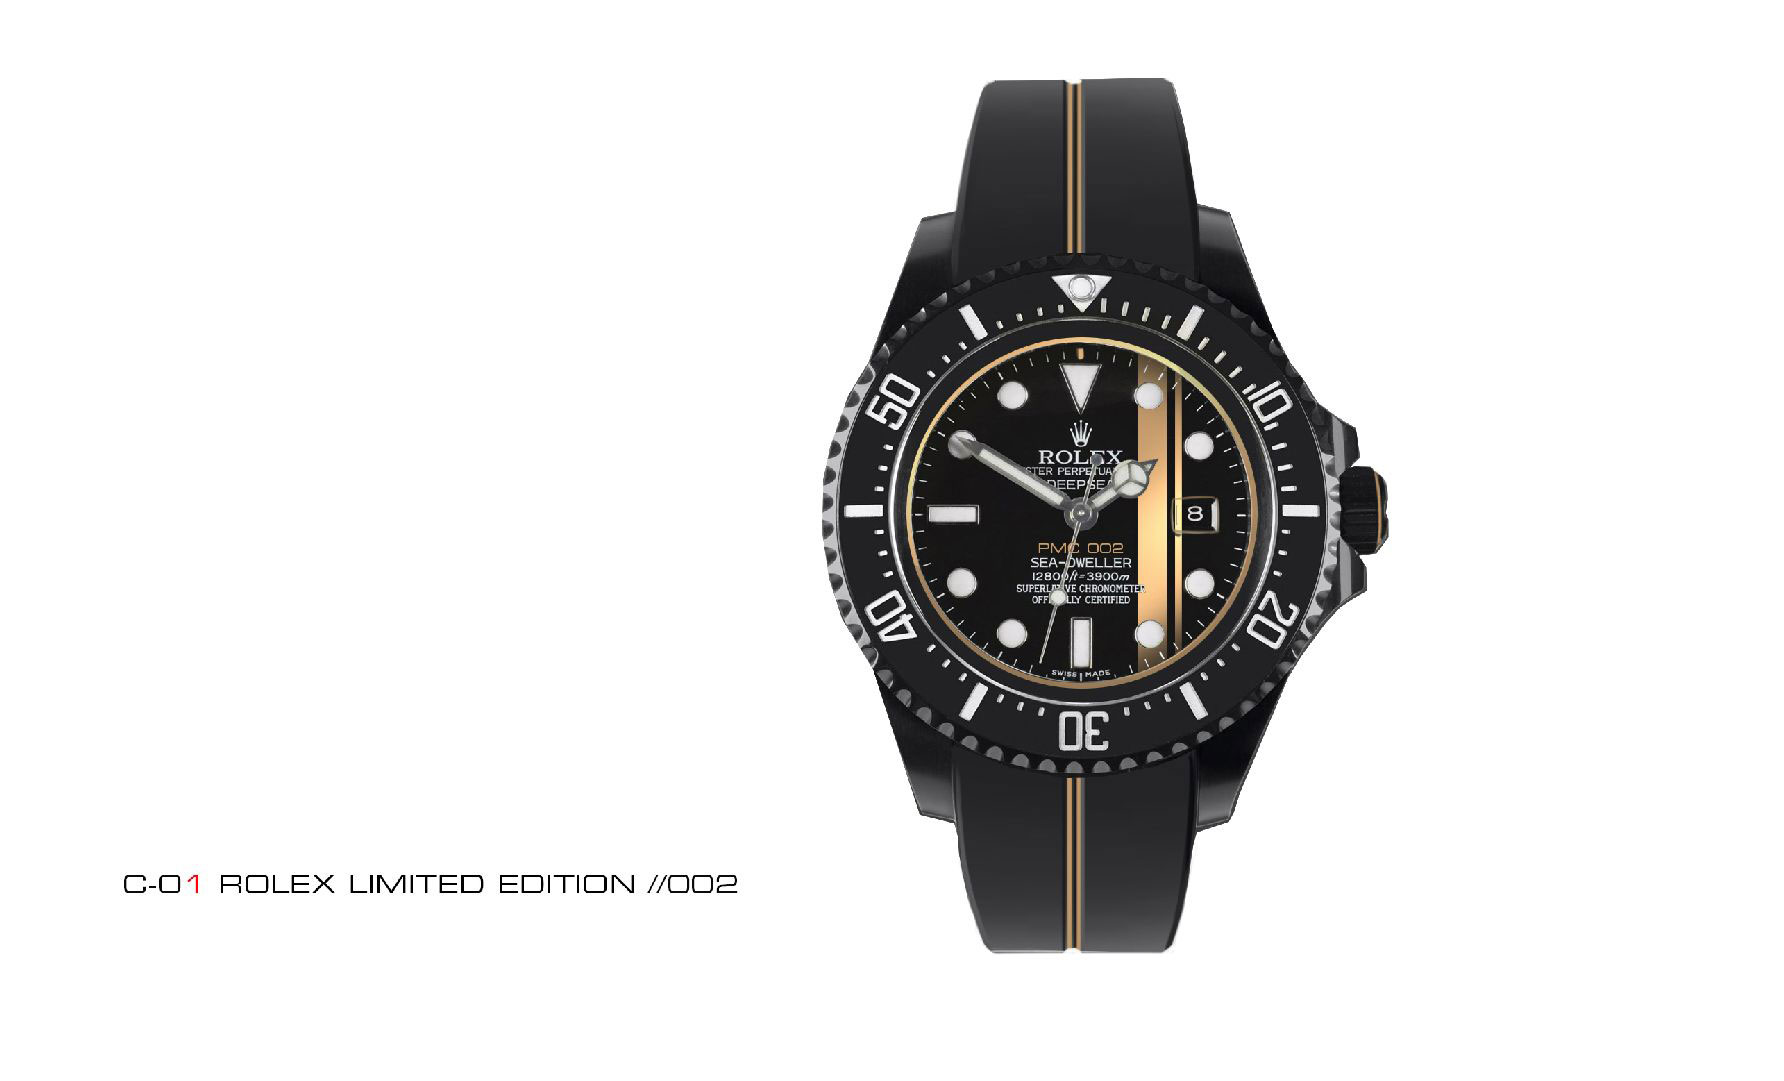 Rolex Lotus C01 Watch Black